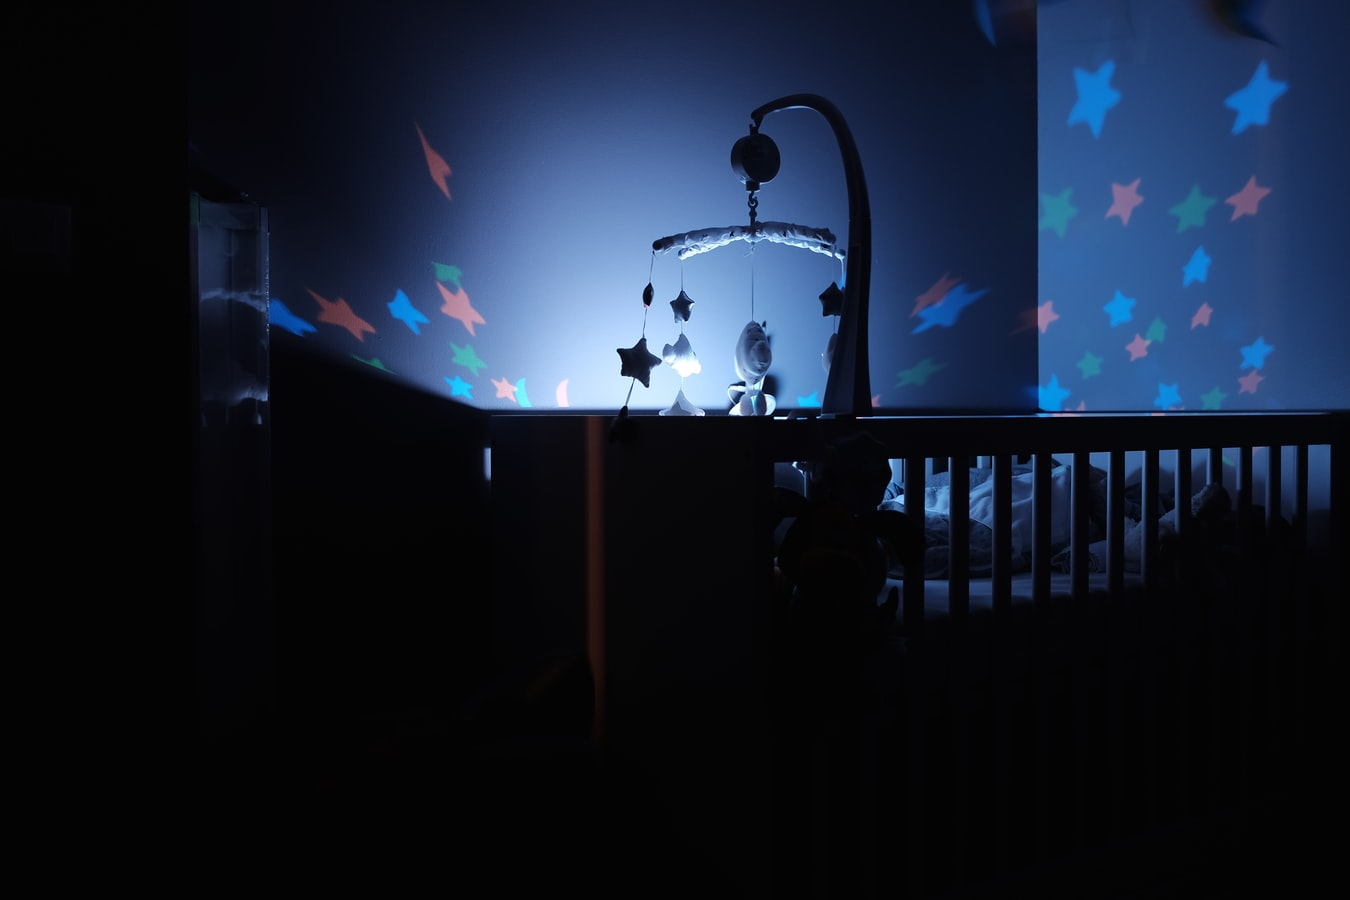 Best Nightlight for Toddlers of 2021